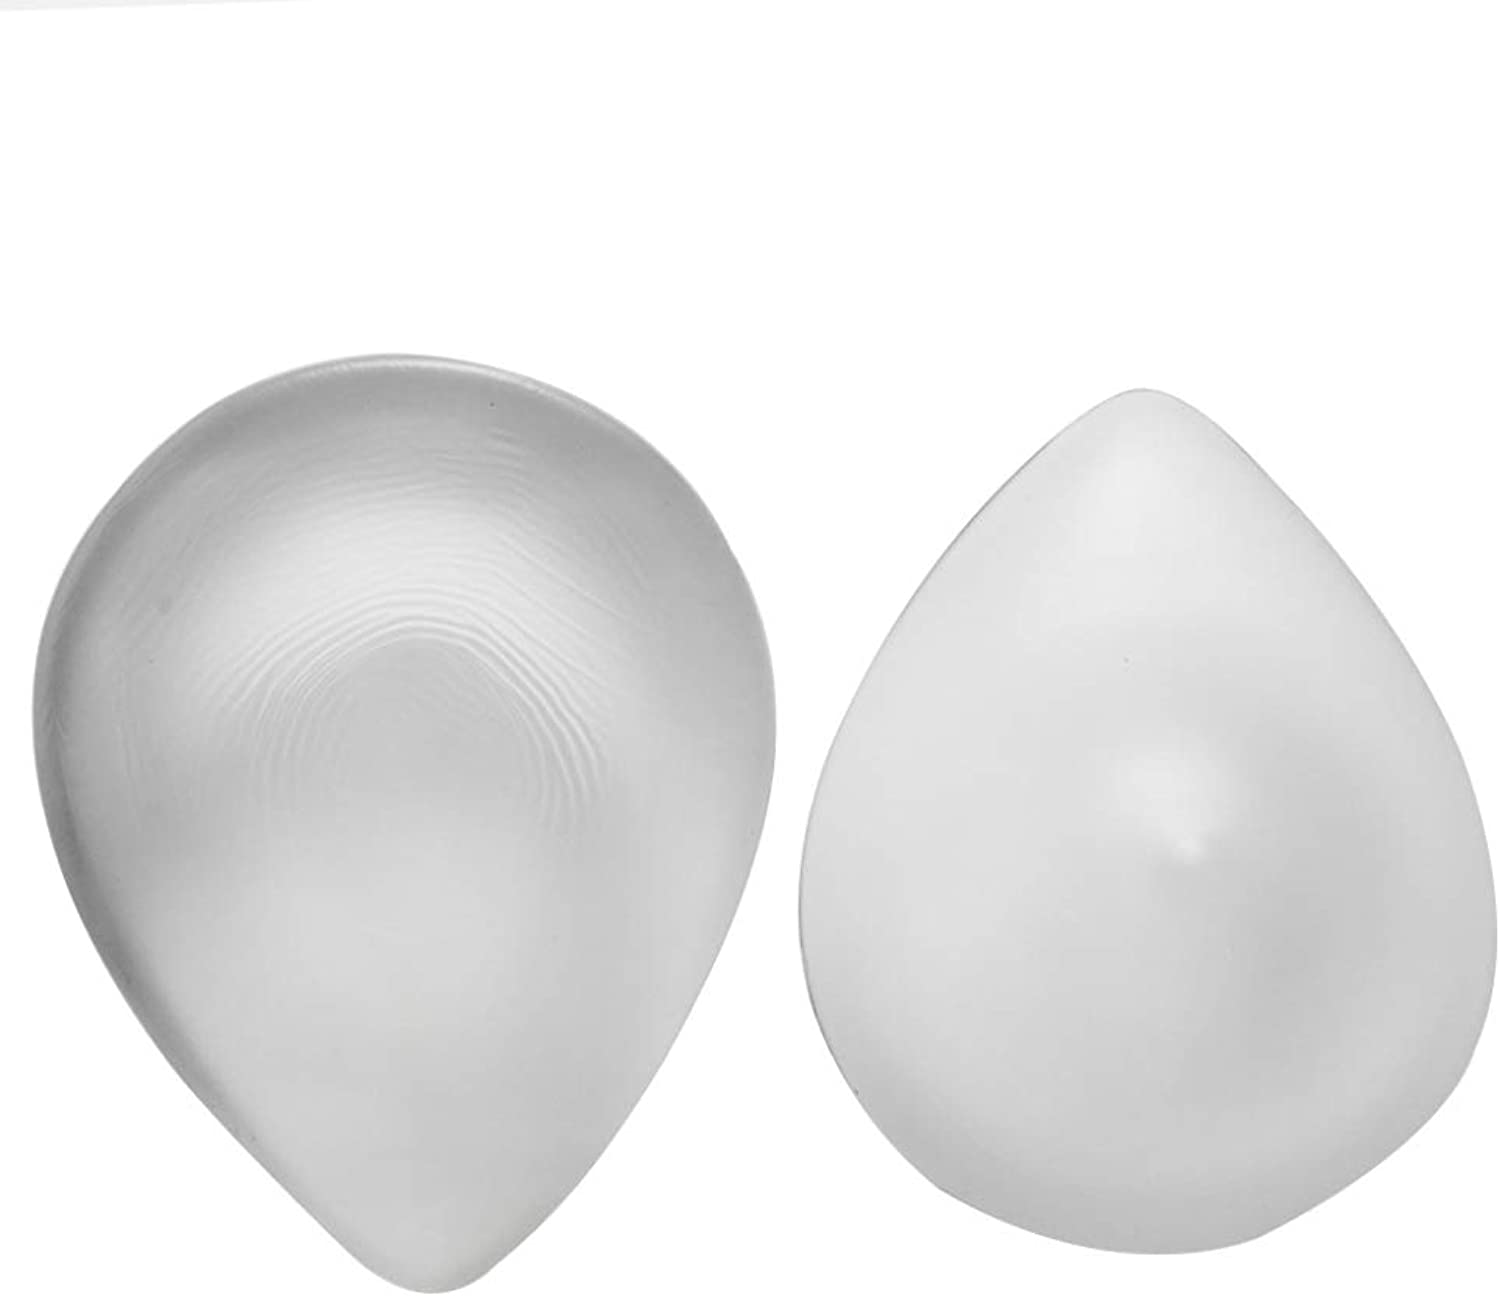 Fake Breast Medical Silicone Breast Prosthesis Fake Chest Full Boob 1 Only Water Drop Shape Transparent Breast,Transparentcolor2XL1.3Lb A